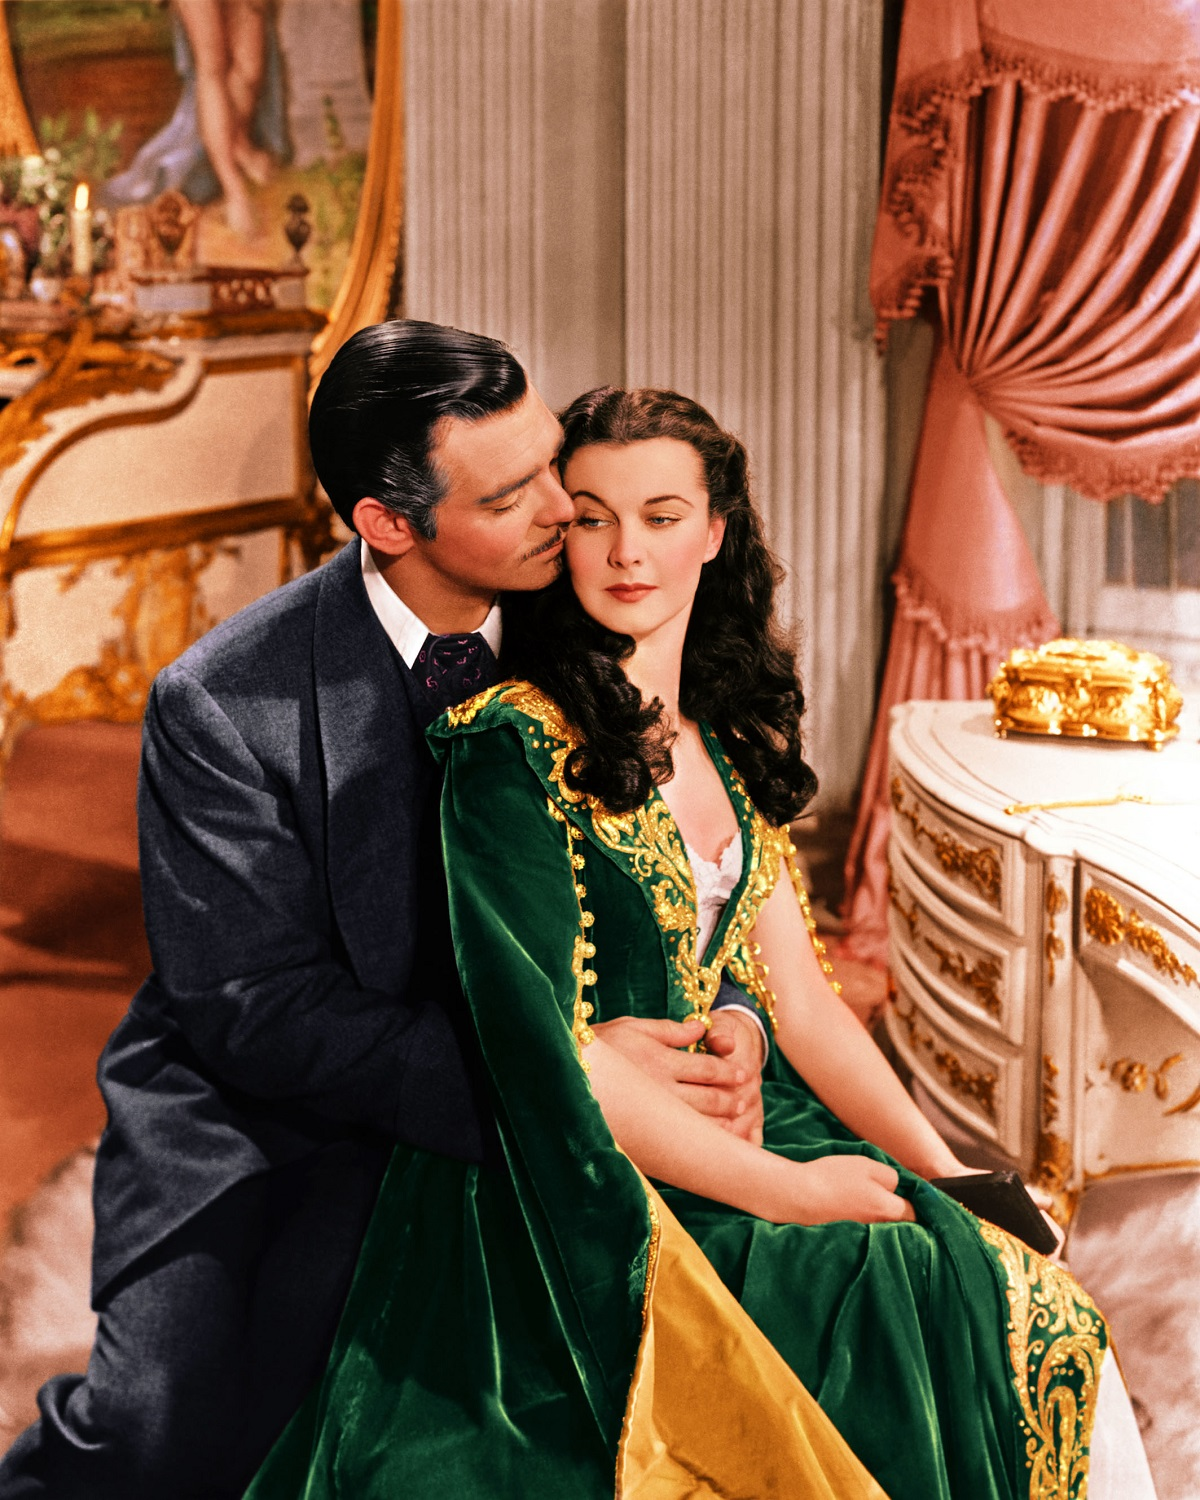 Clark Gable and Vivien Leigh in 1939